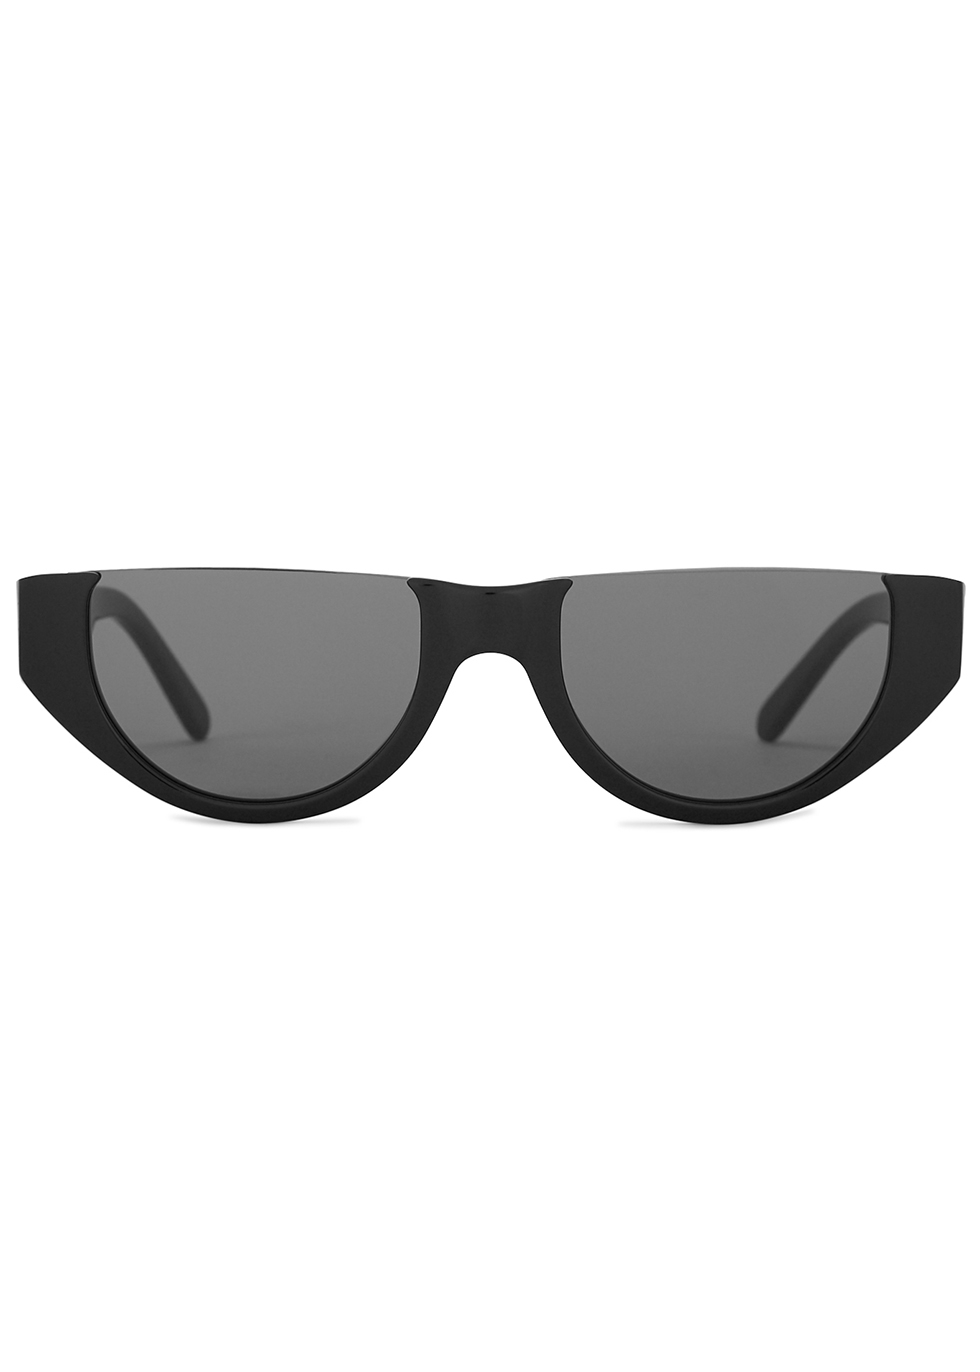 Florence black D-frame sunglasses - Finlay & Co